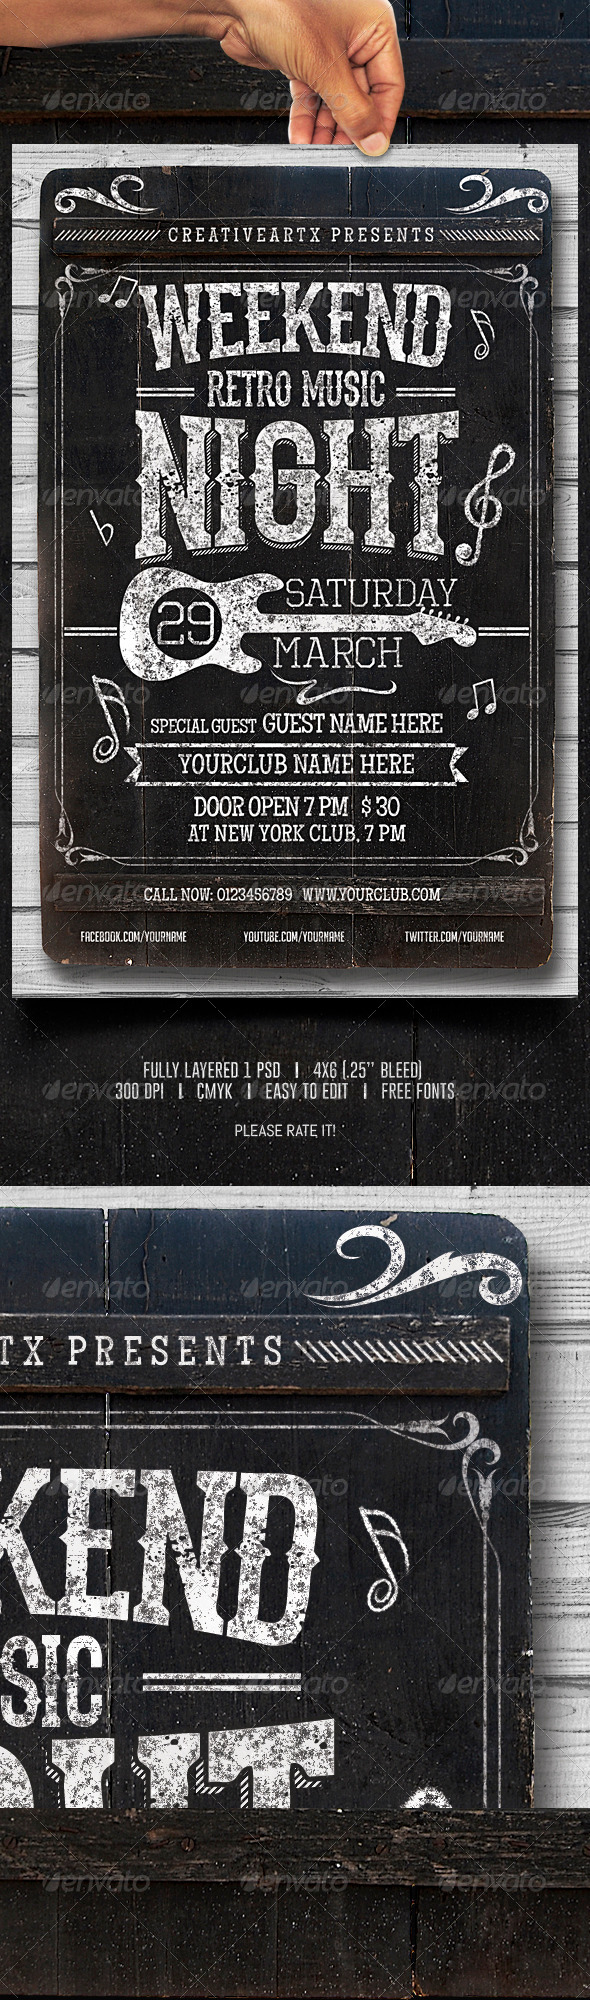 GraphicRiver Weekend Retro Music Night 7096085